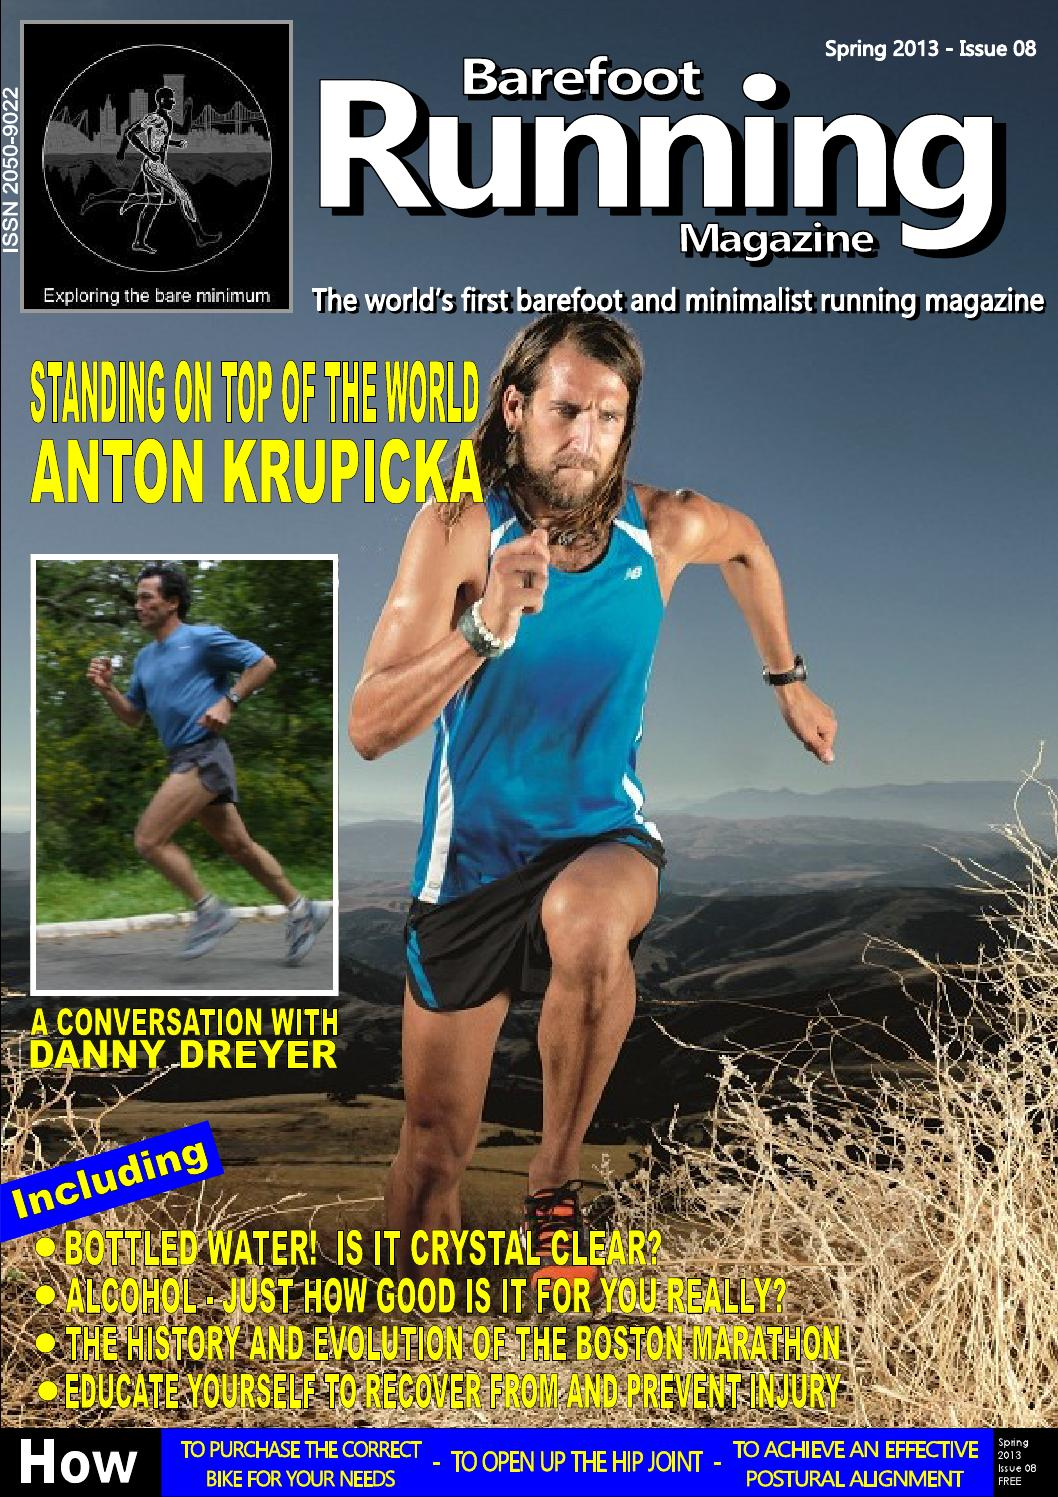 Barefoot Running Magazine Issue 8 (Spring 2013) by